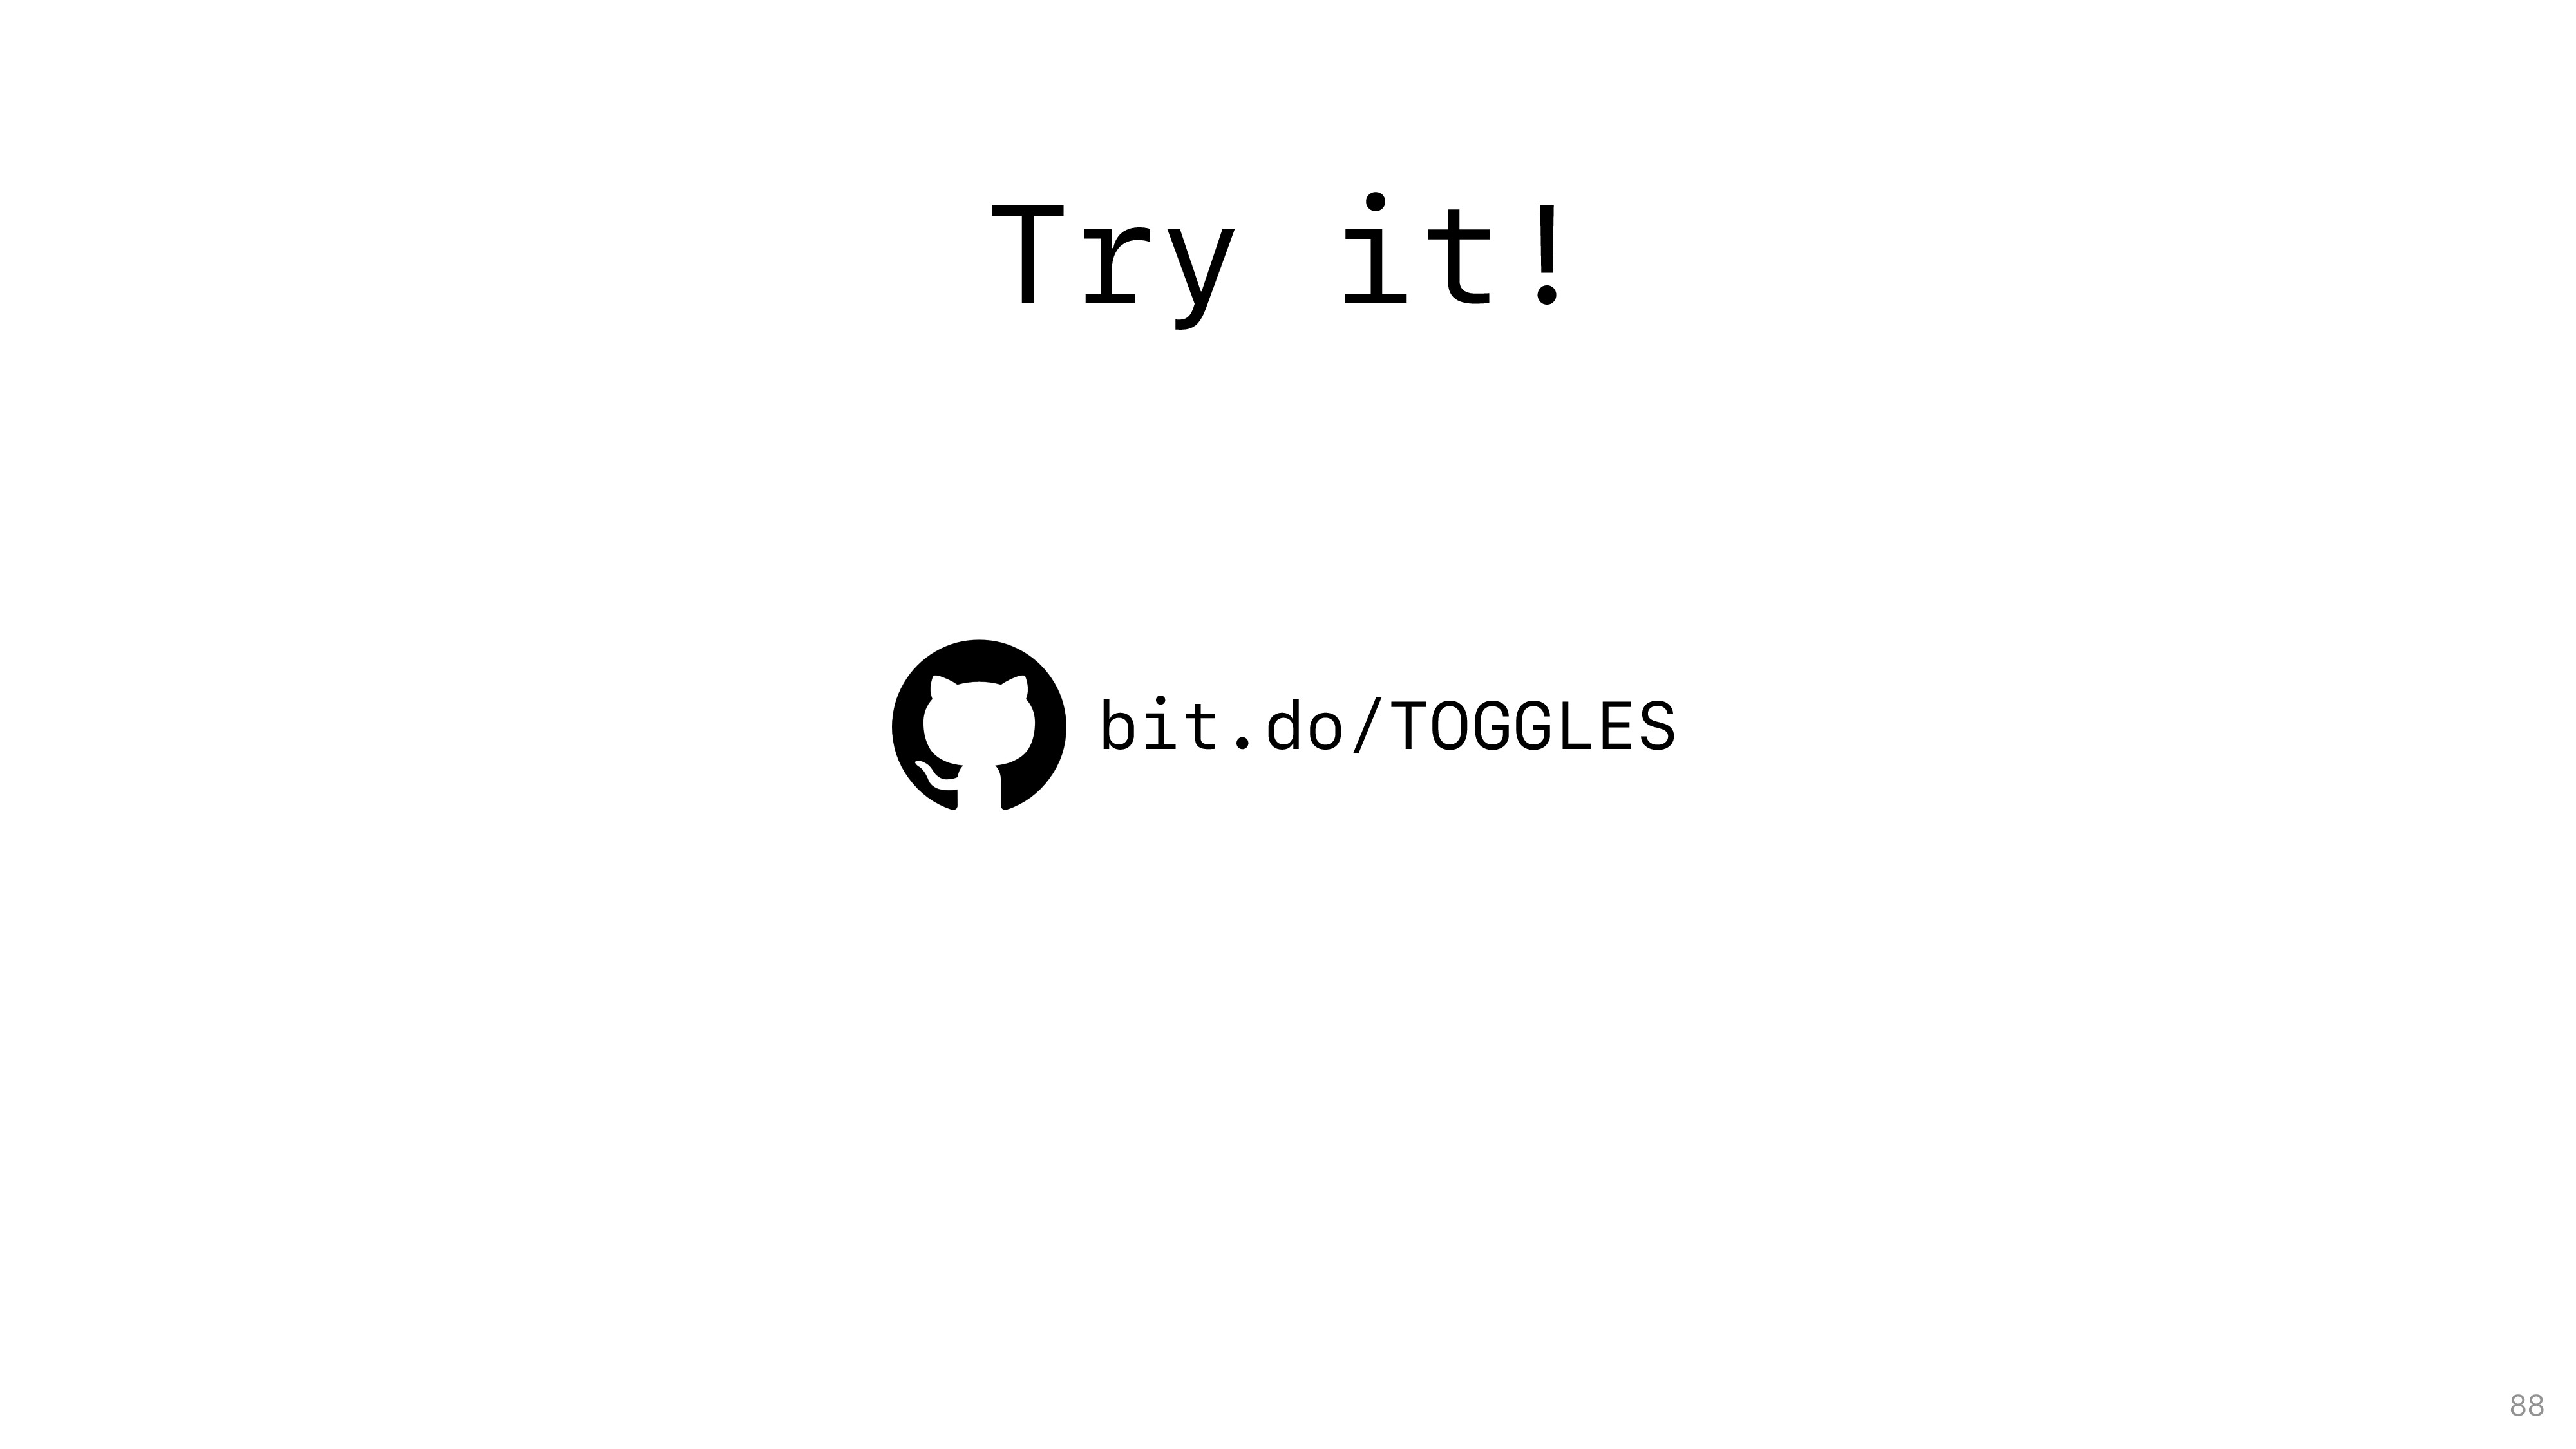 Try it! bit.do/TOGGLES 88